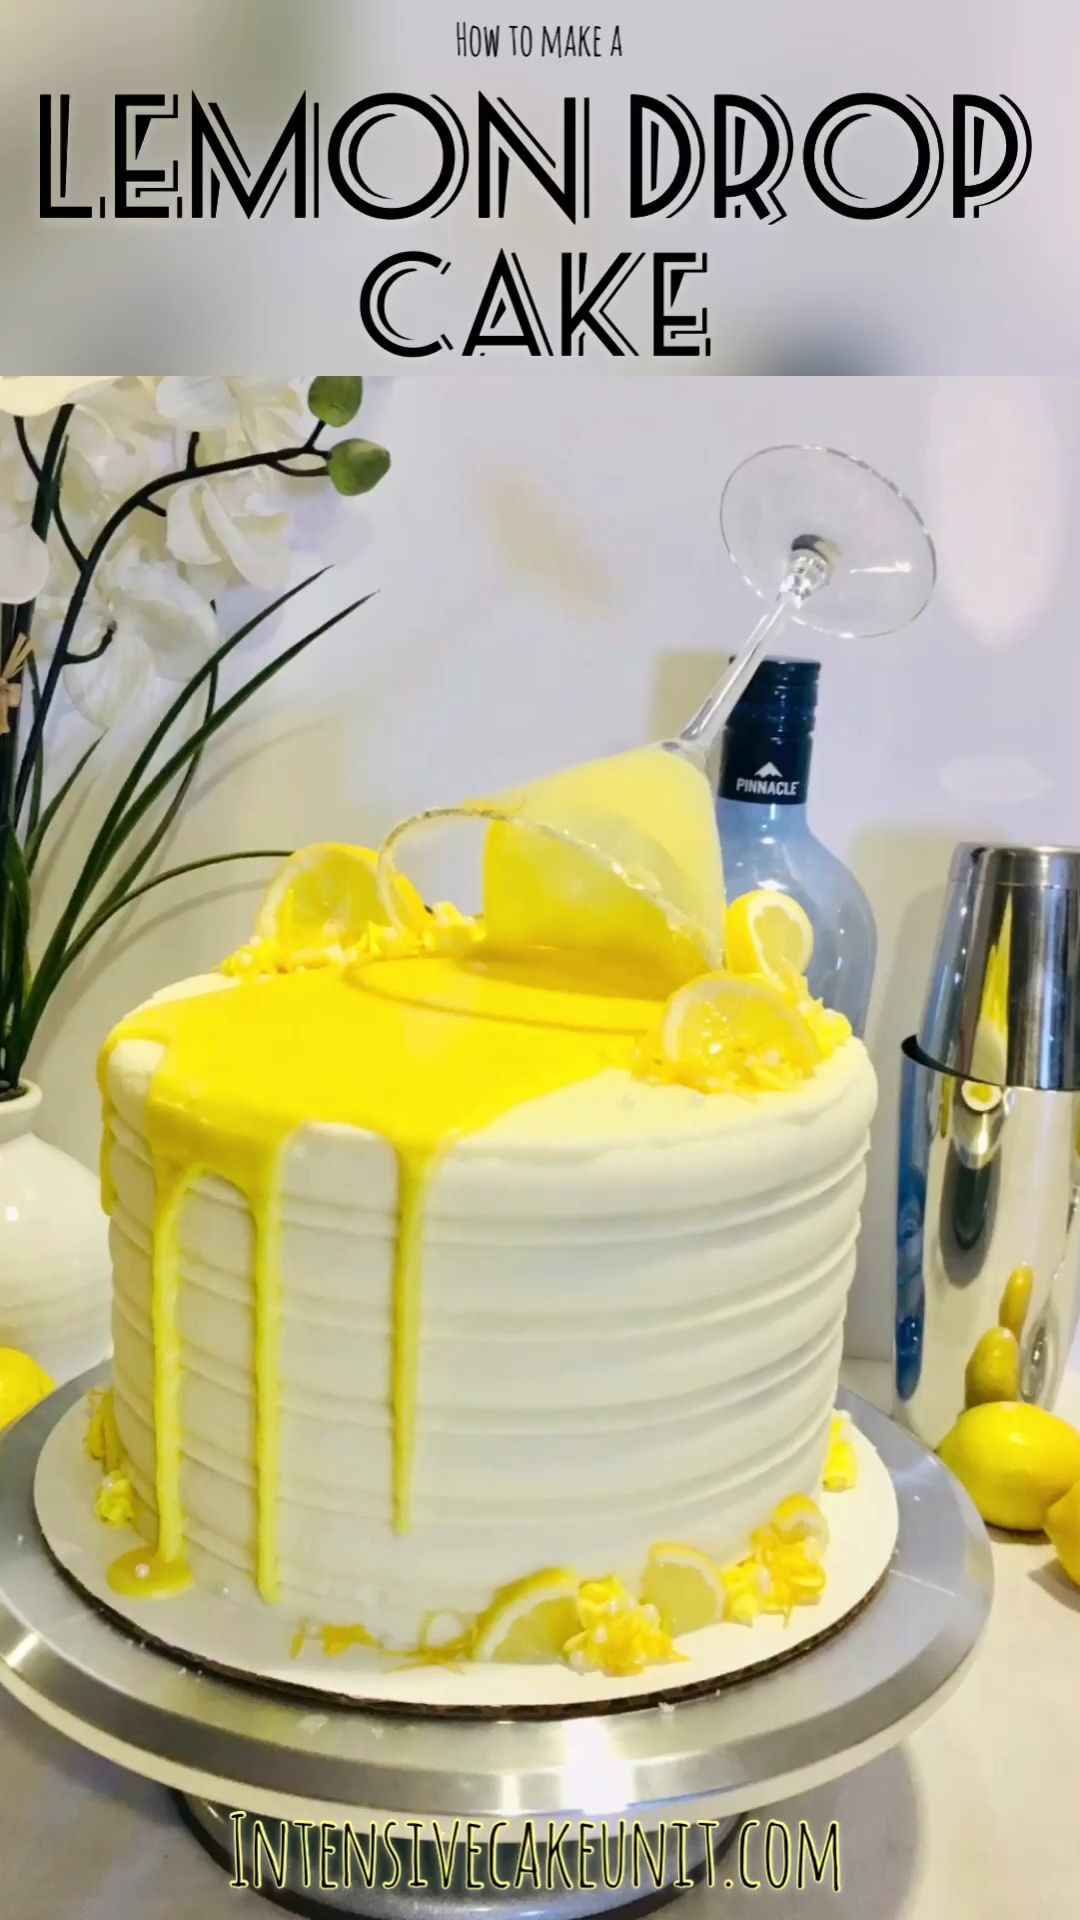 Lemon Drop Cake Vodka and lemon juice-infused Lemon Drop Cake! Lemon cake layers with lemon and vodka frosting, topped with a bright yellow glaze and a martini glass.